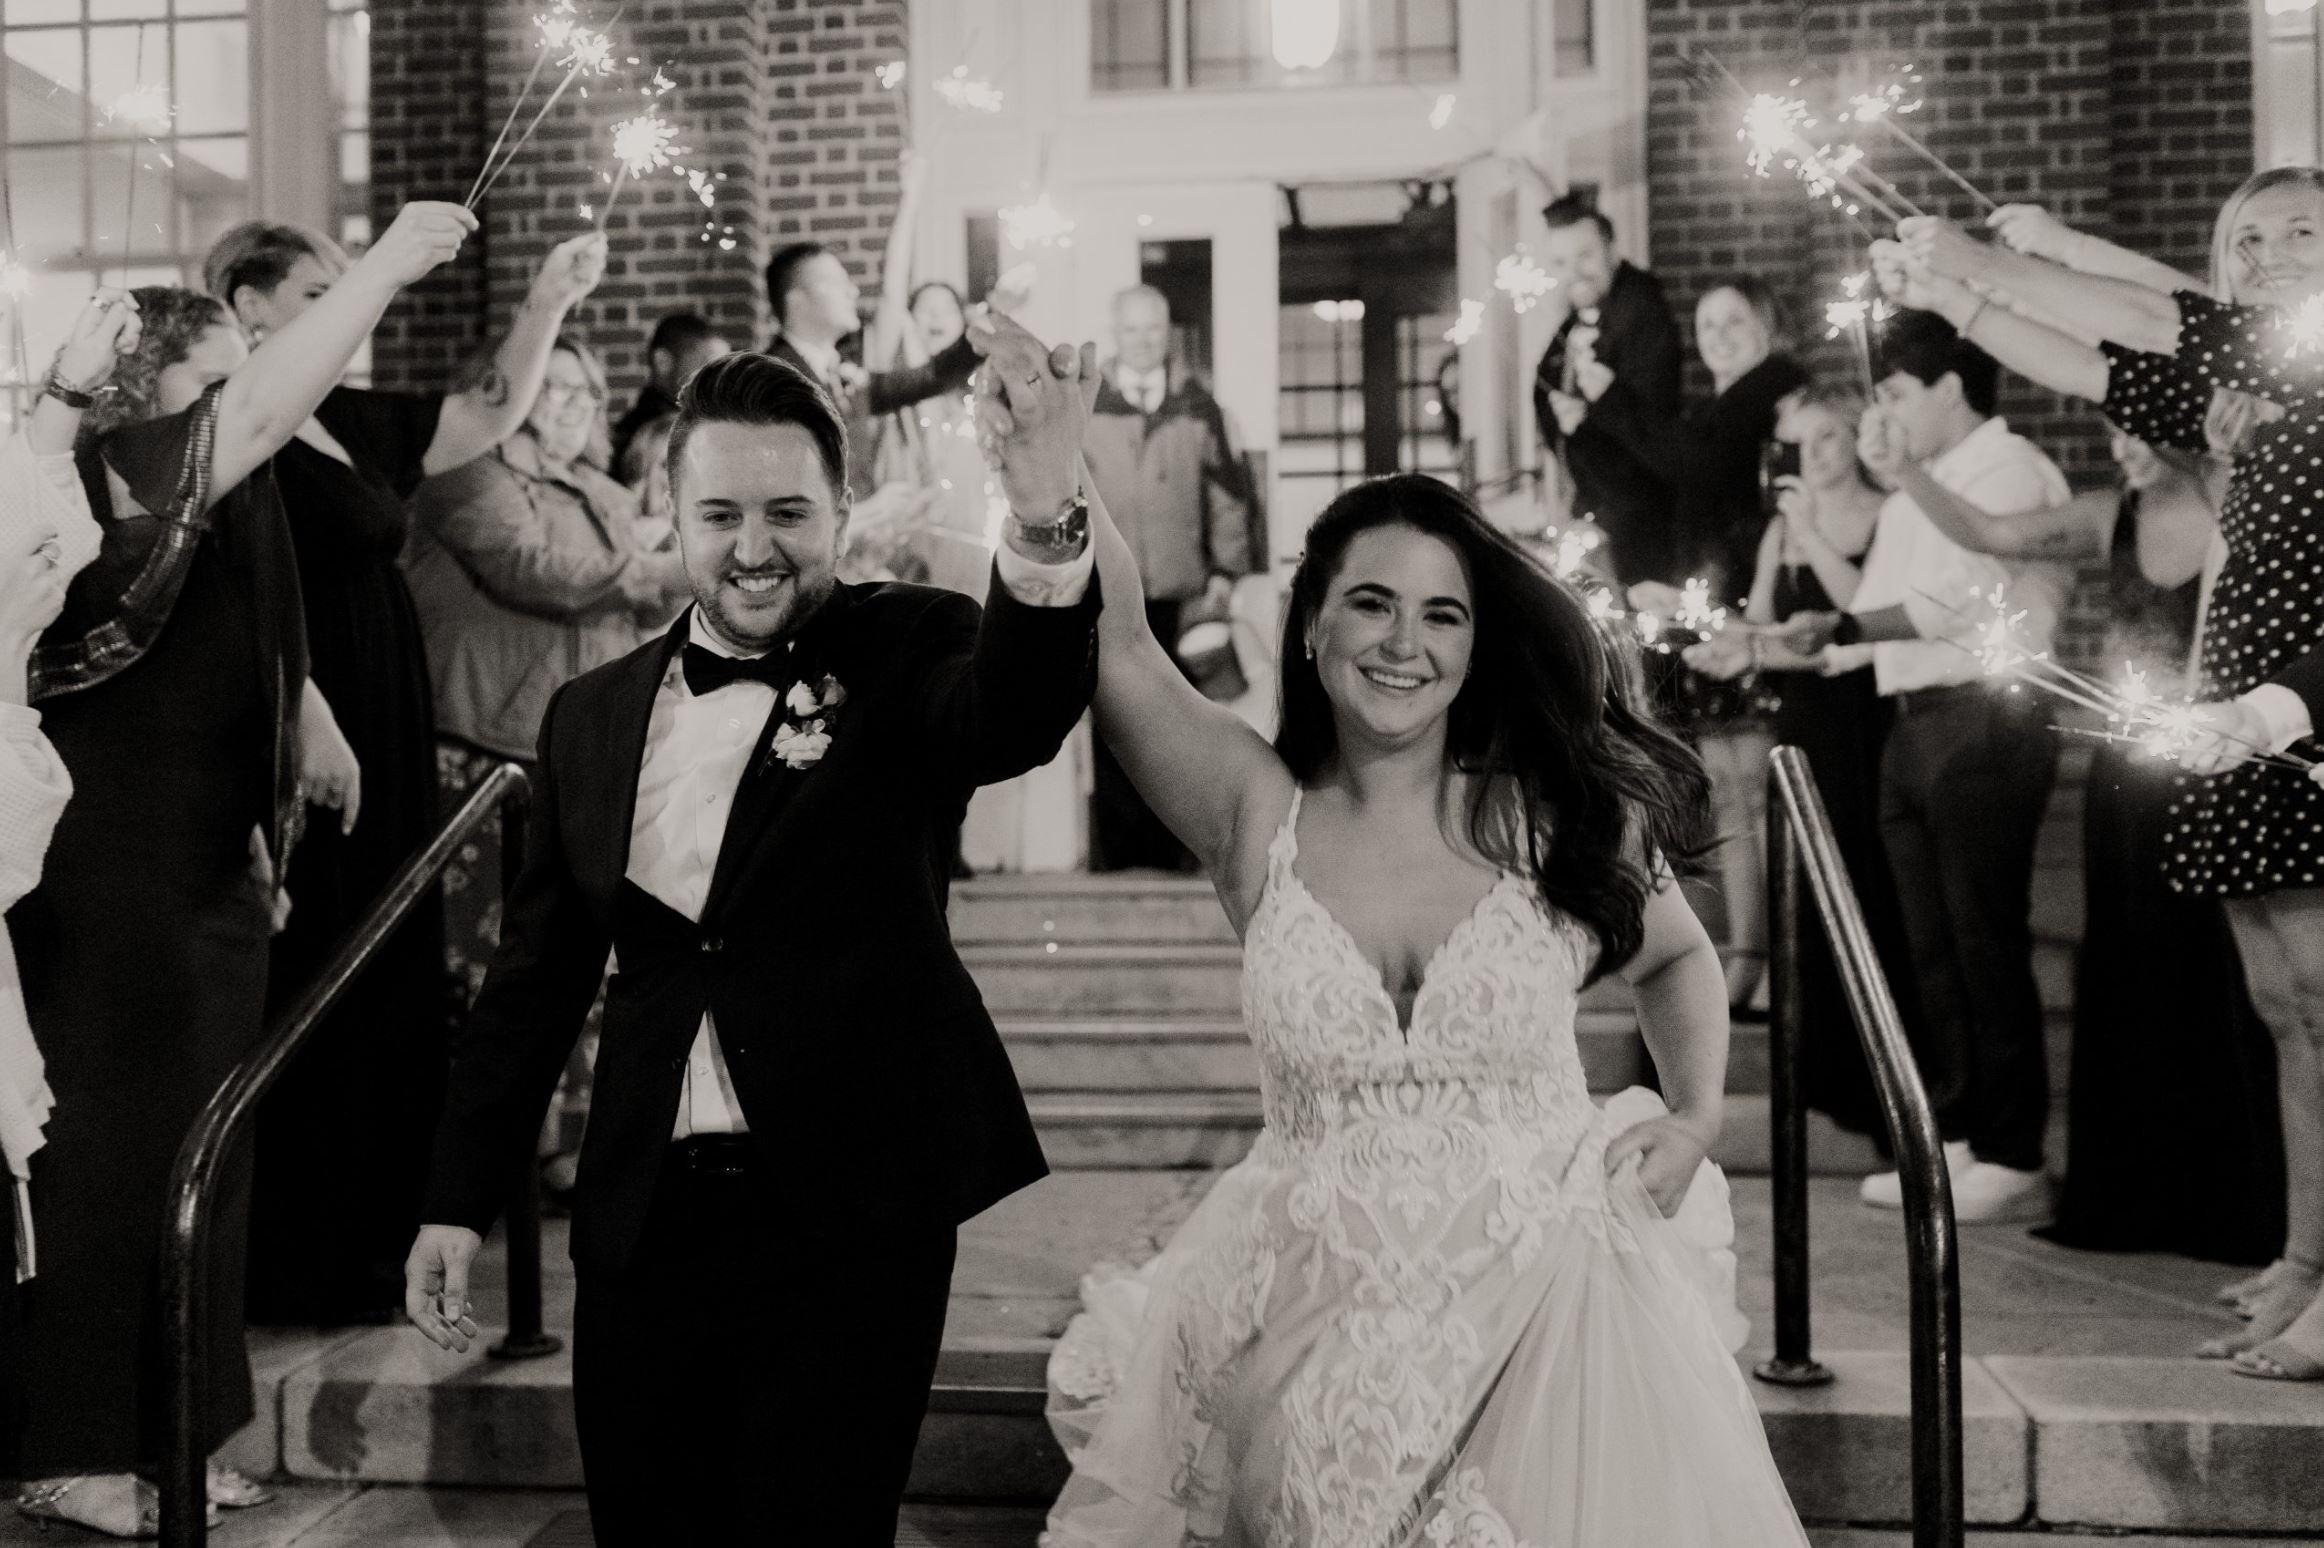 A wedding couple is walking down the stairs with their guests cheering at them, at the Festivities Event Center in Oklahoma.